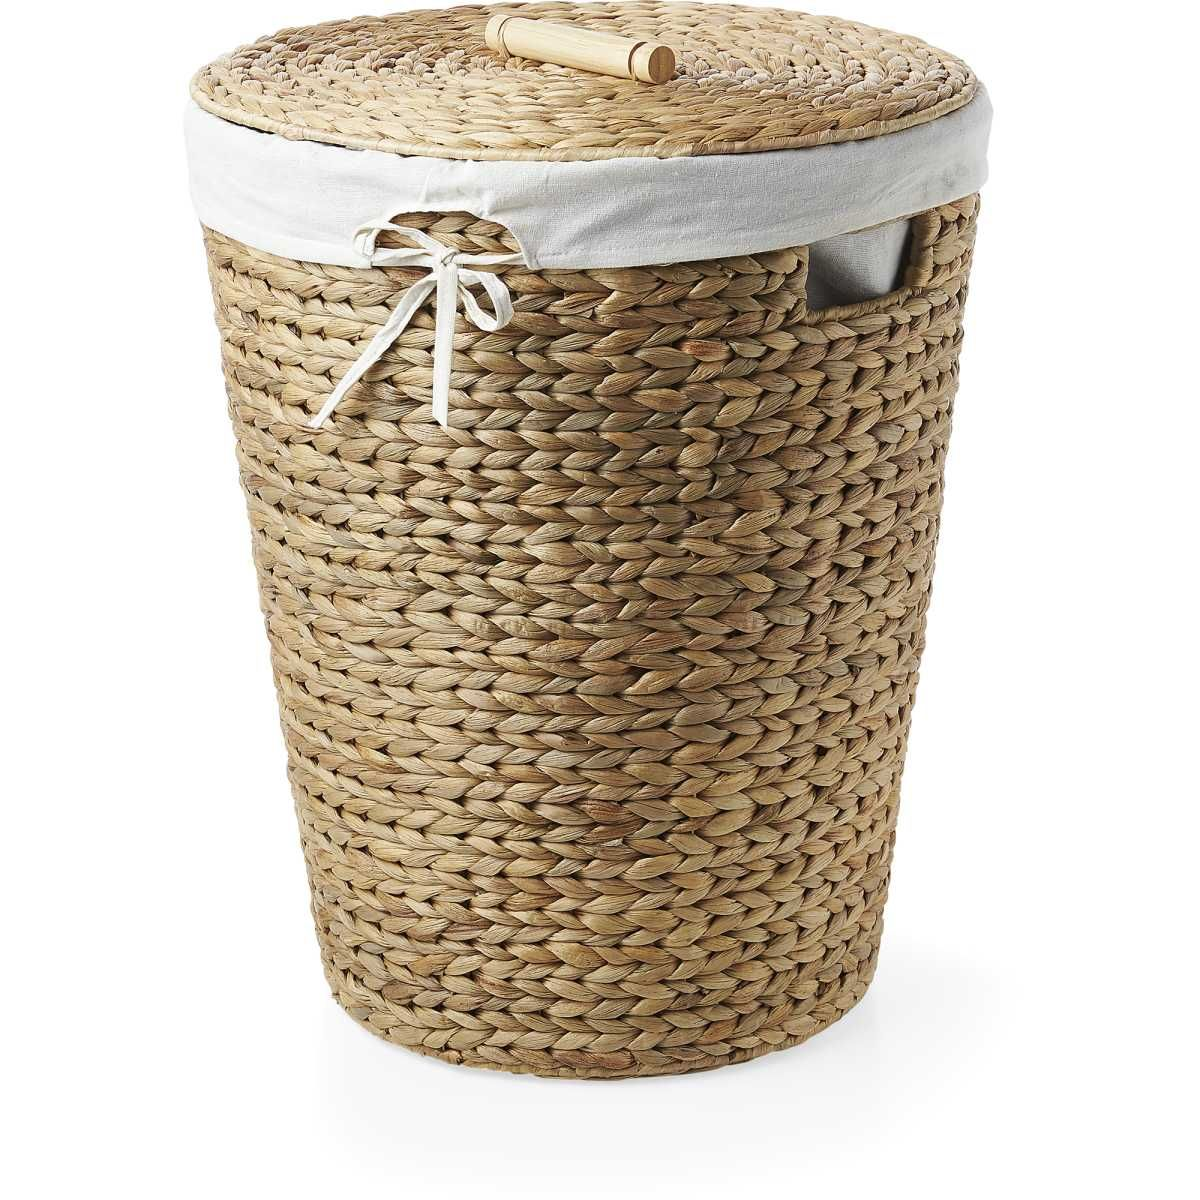 House Home Arrow Weave Laundry Hamper With Lid In 2020 Laundry Hamper Laundry Hamper With Lid Hamper